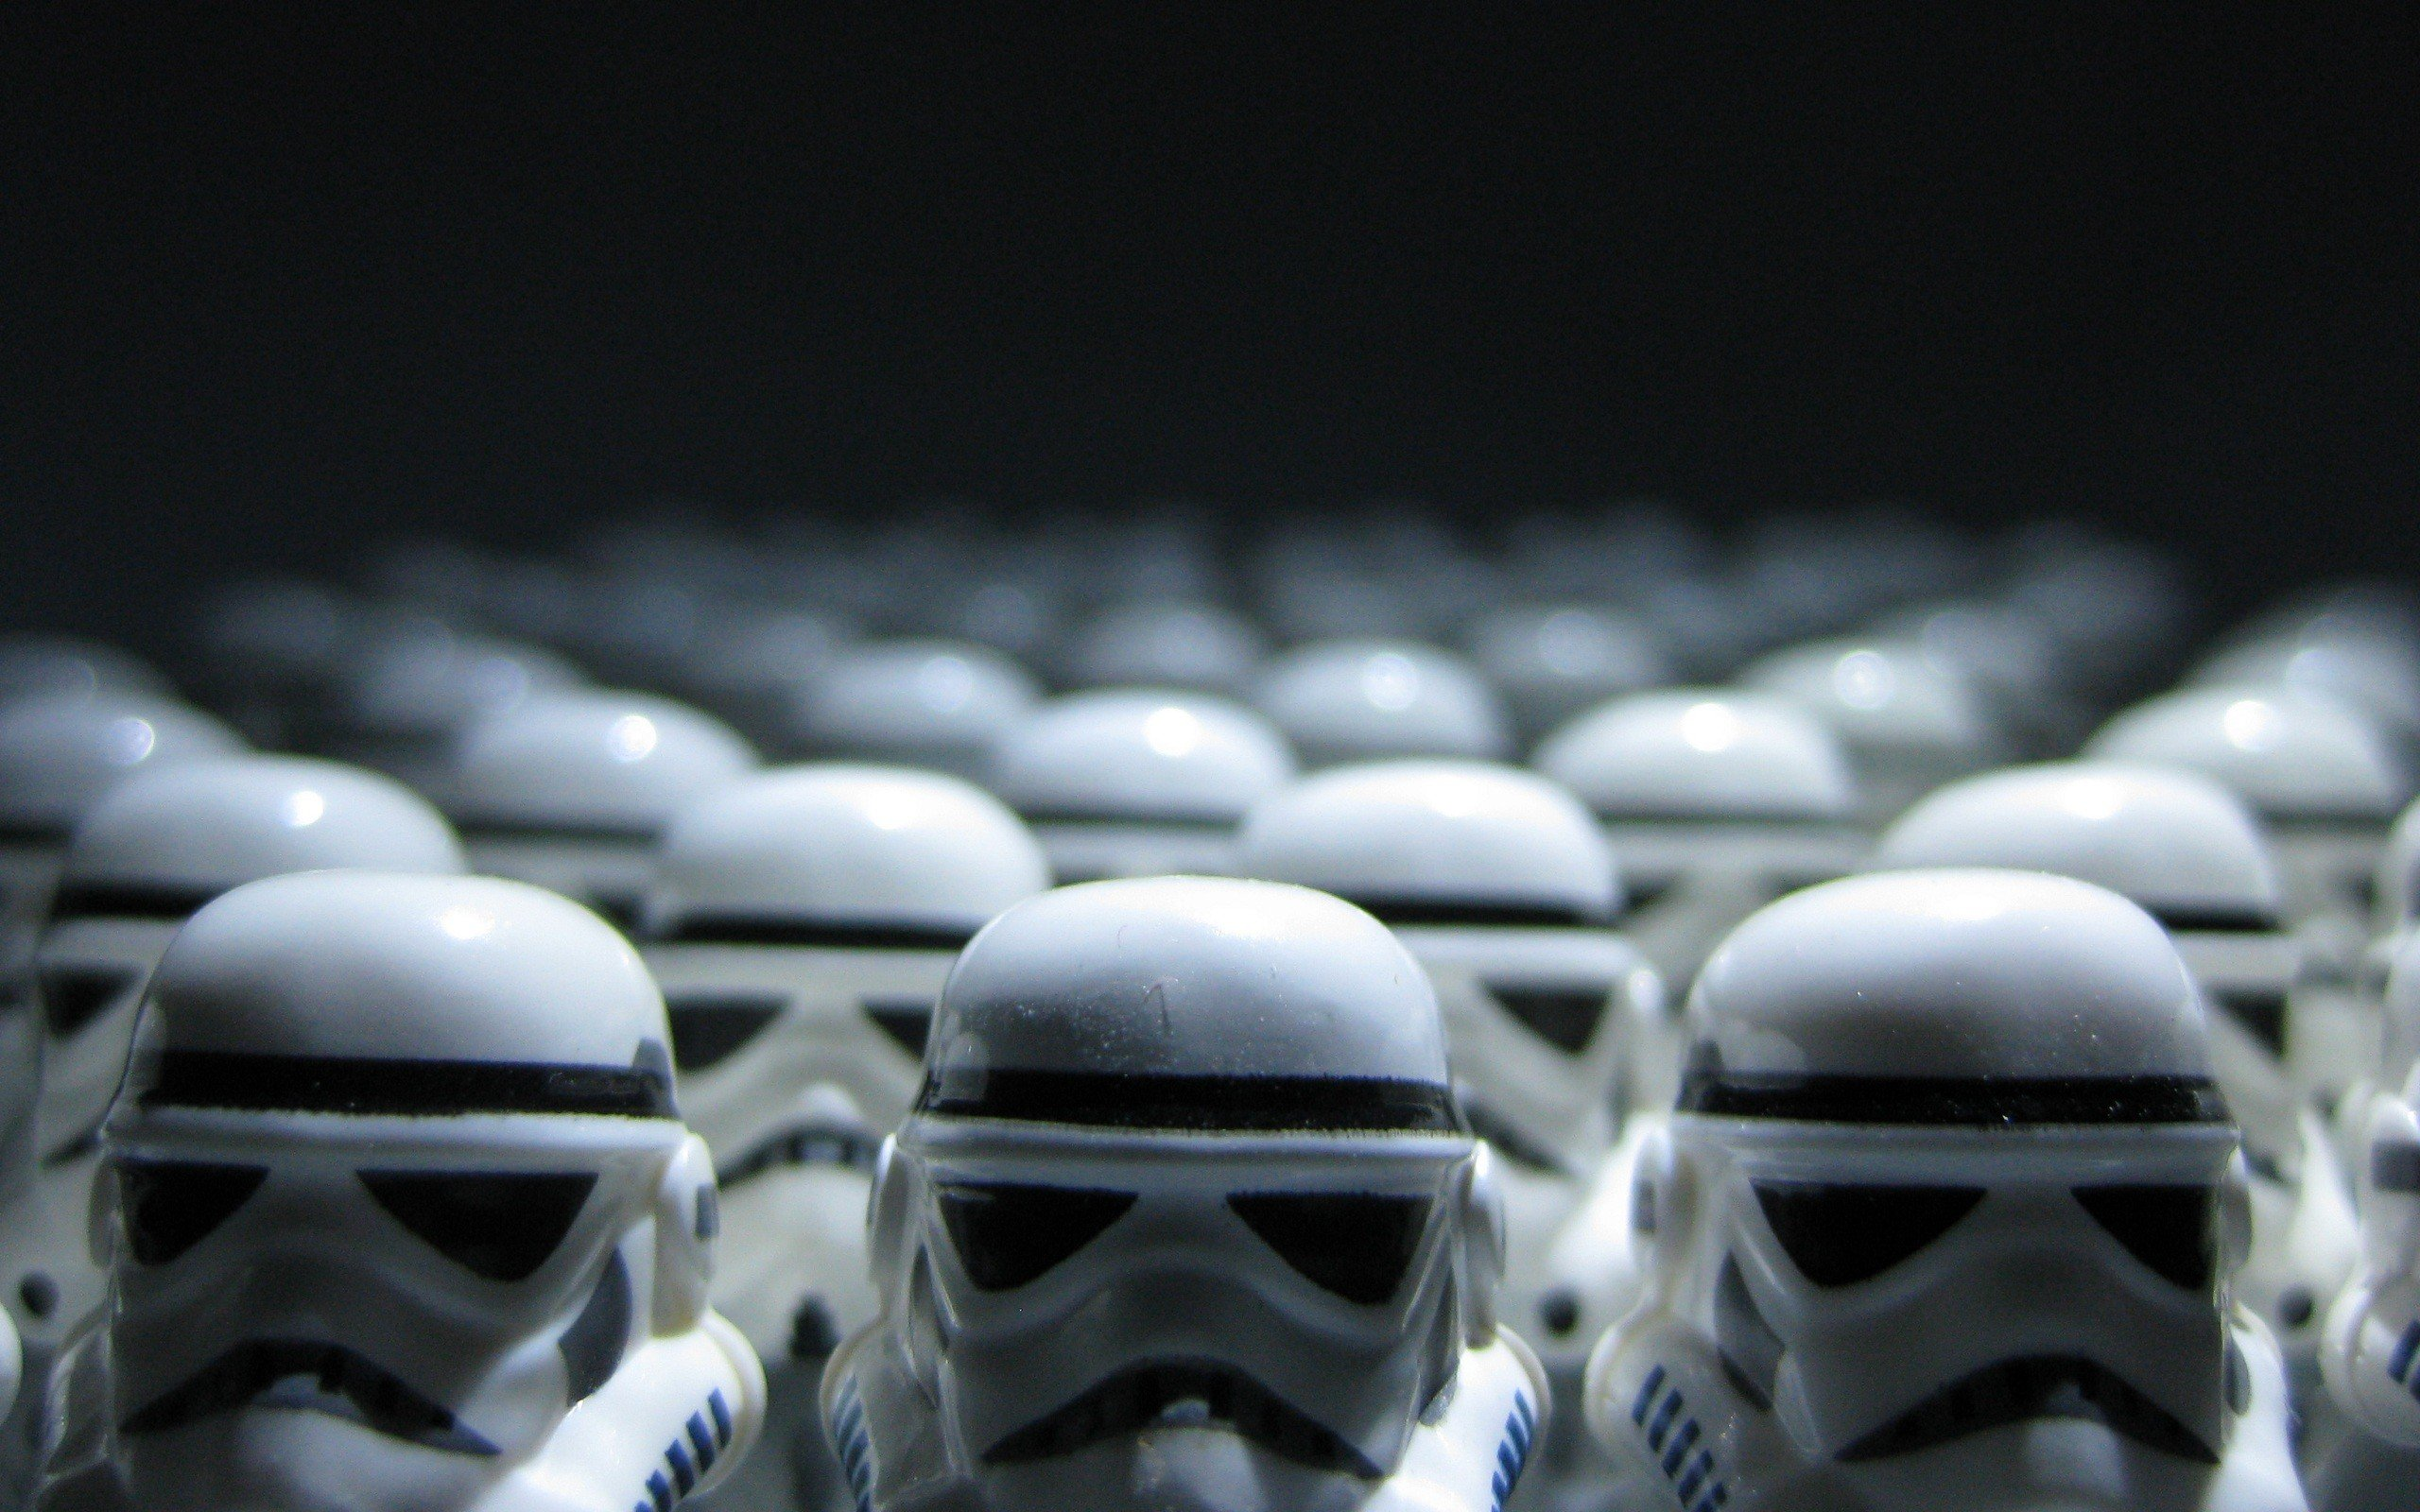 download wallpaper: LEGO Star Wars Stormtroopers wallpaper